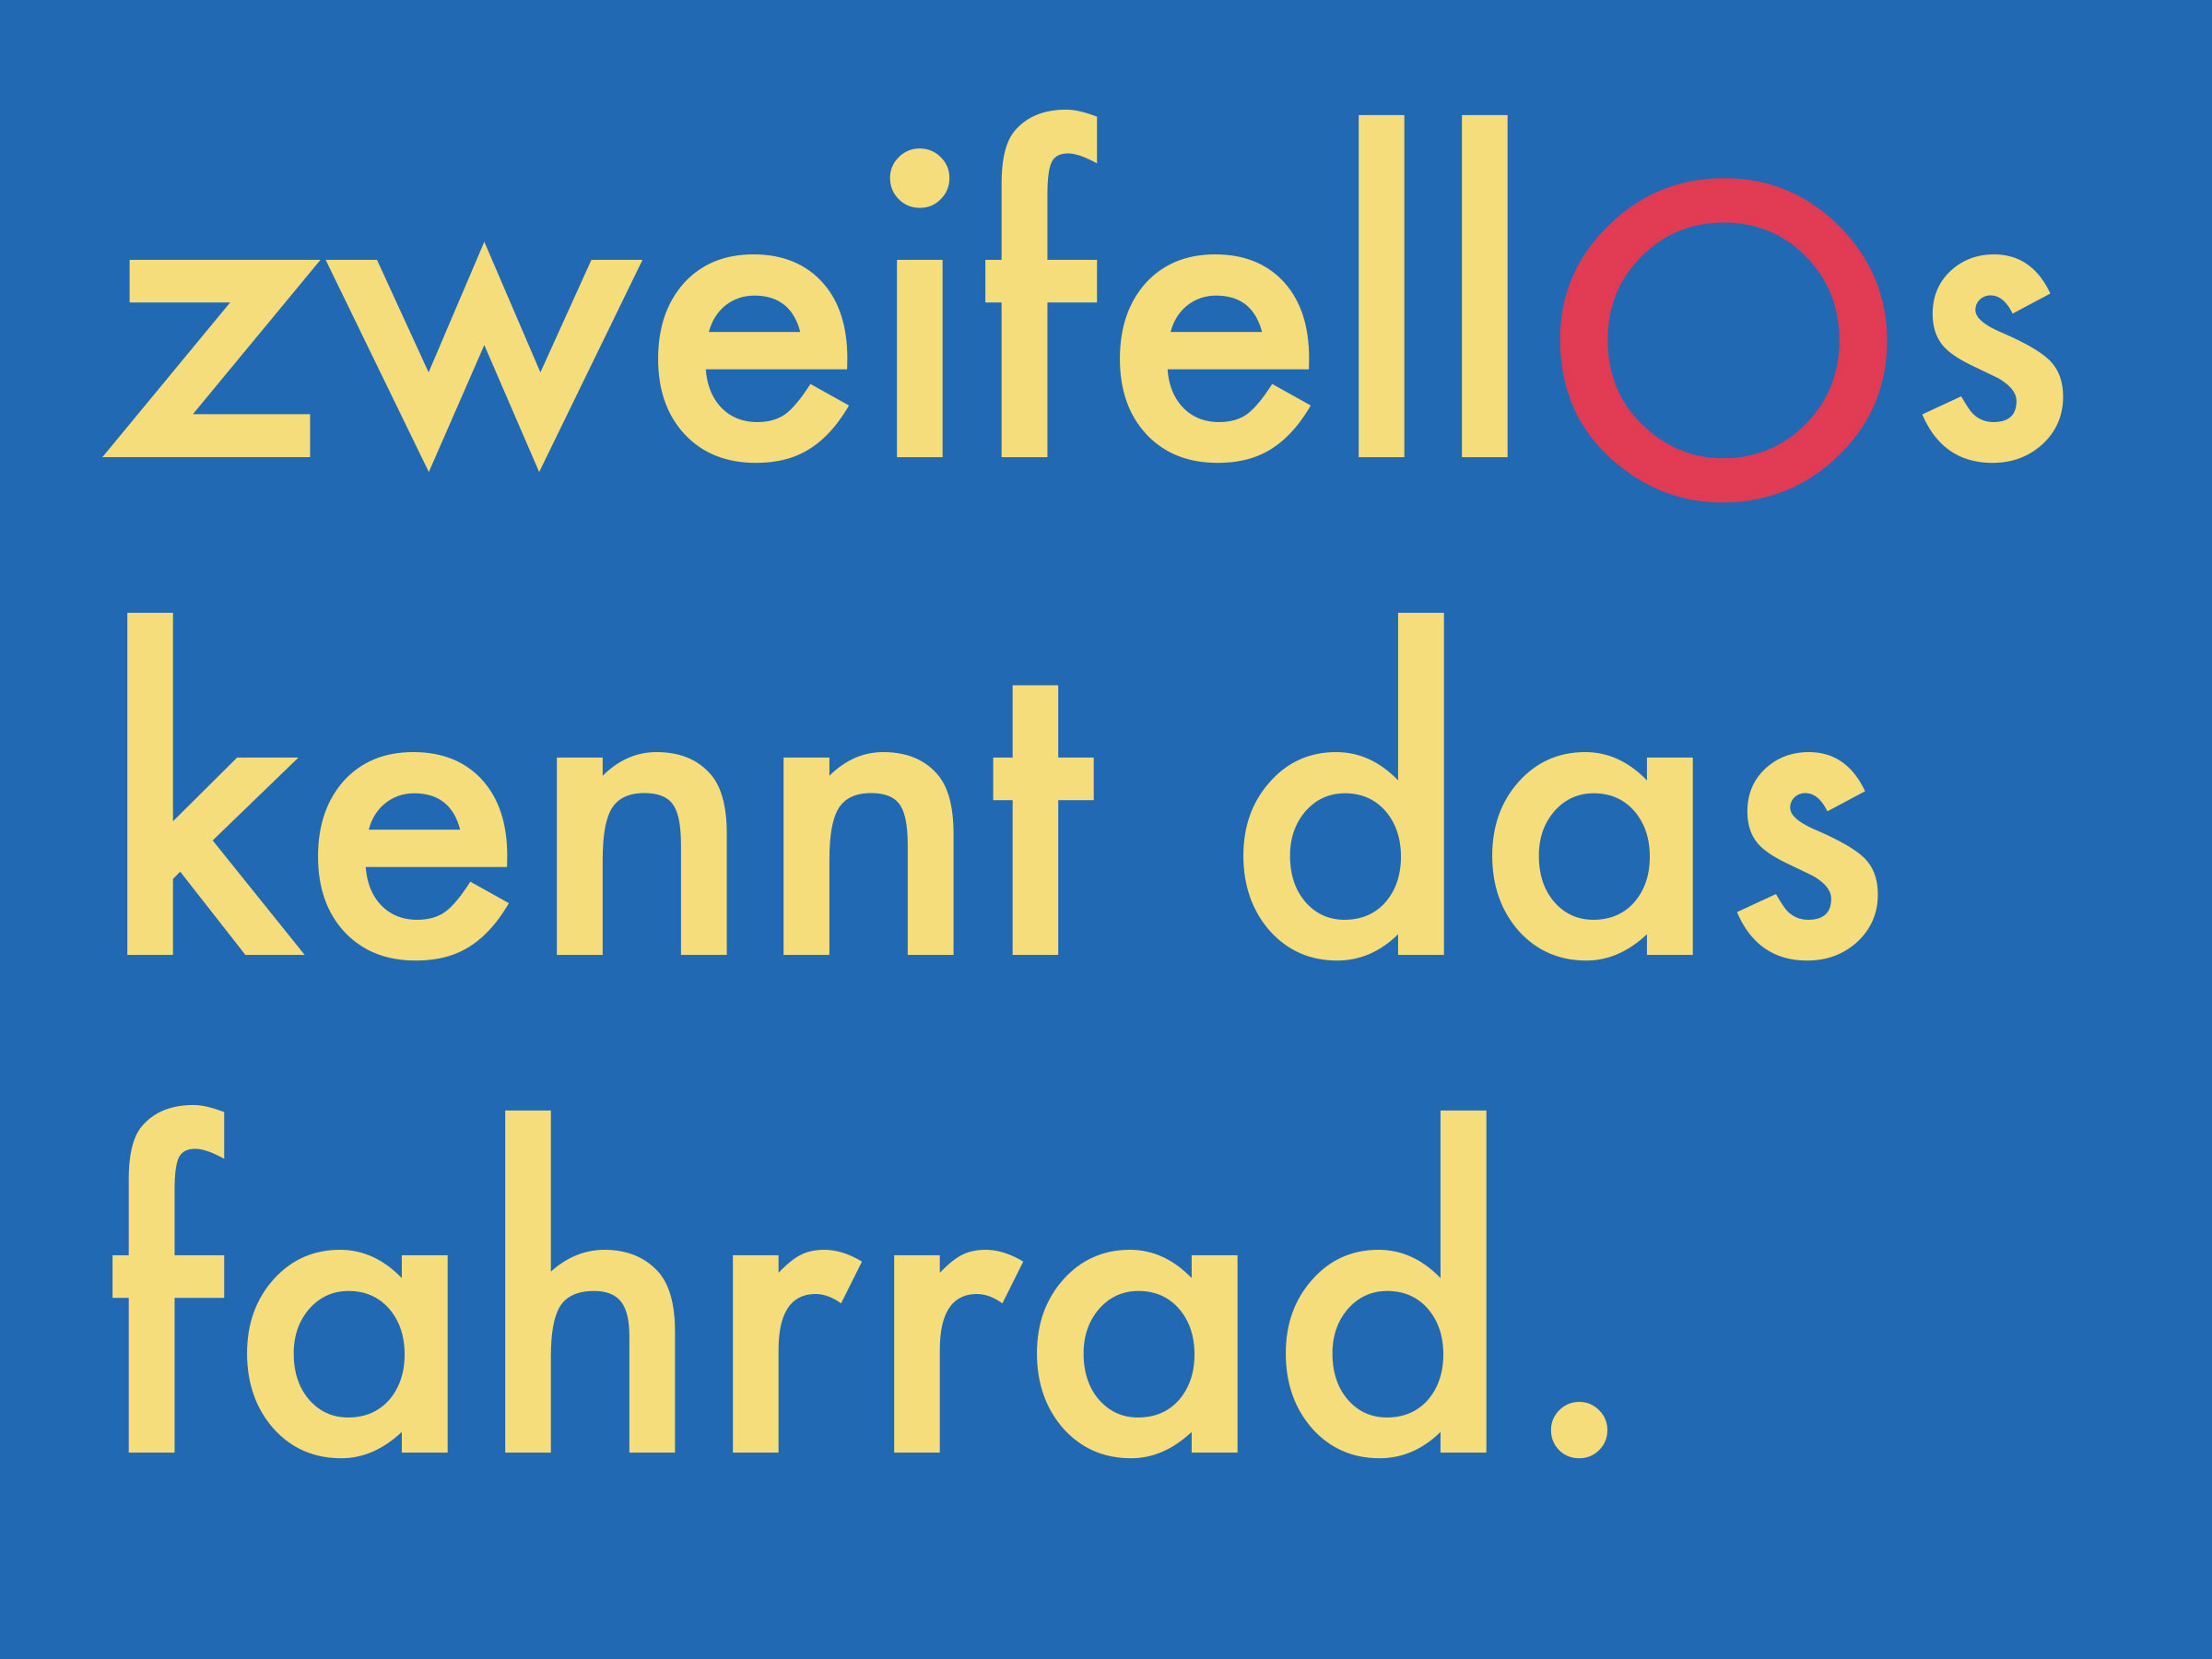 Campaign copy — designed in both German and English.